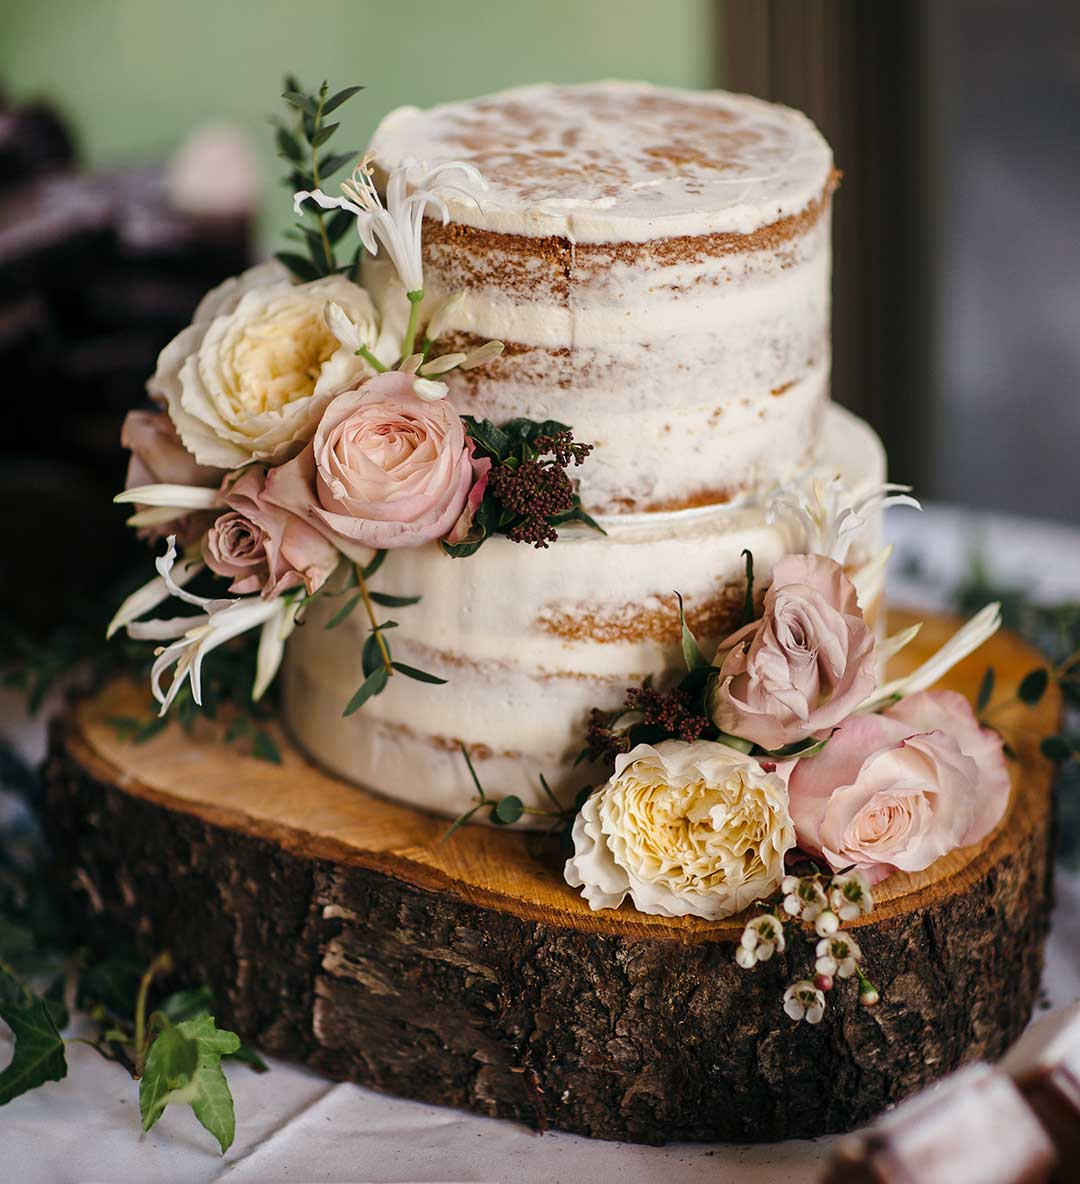 Wedding cake decorated with winter flowers